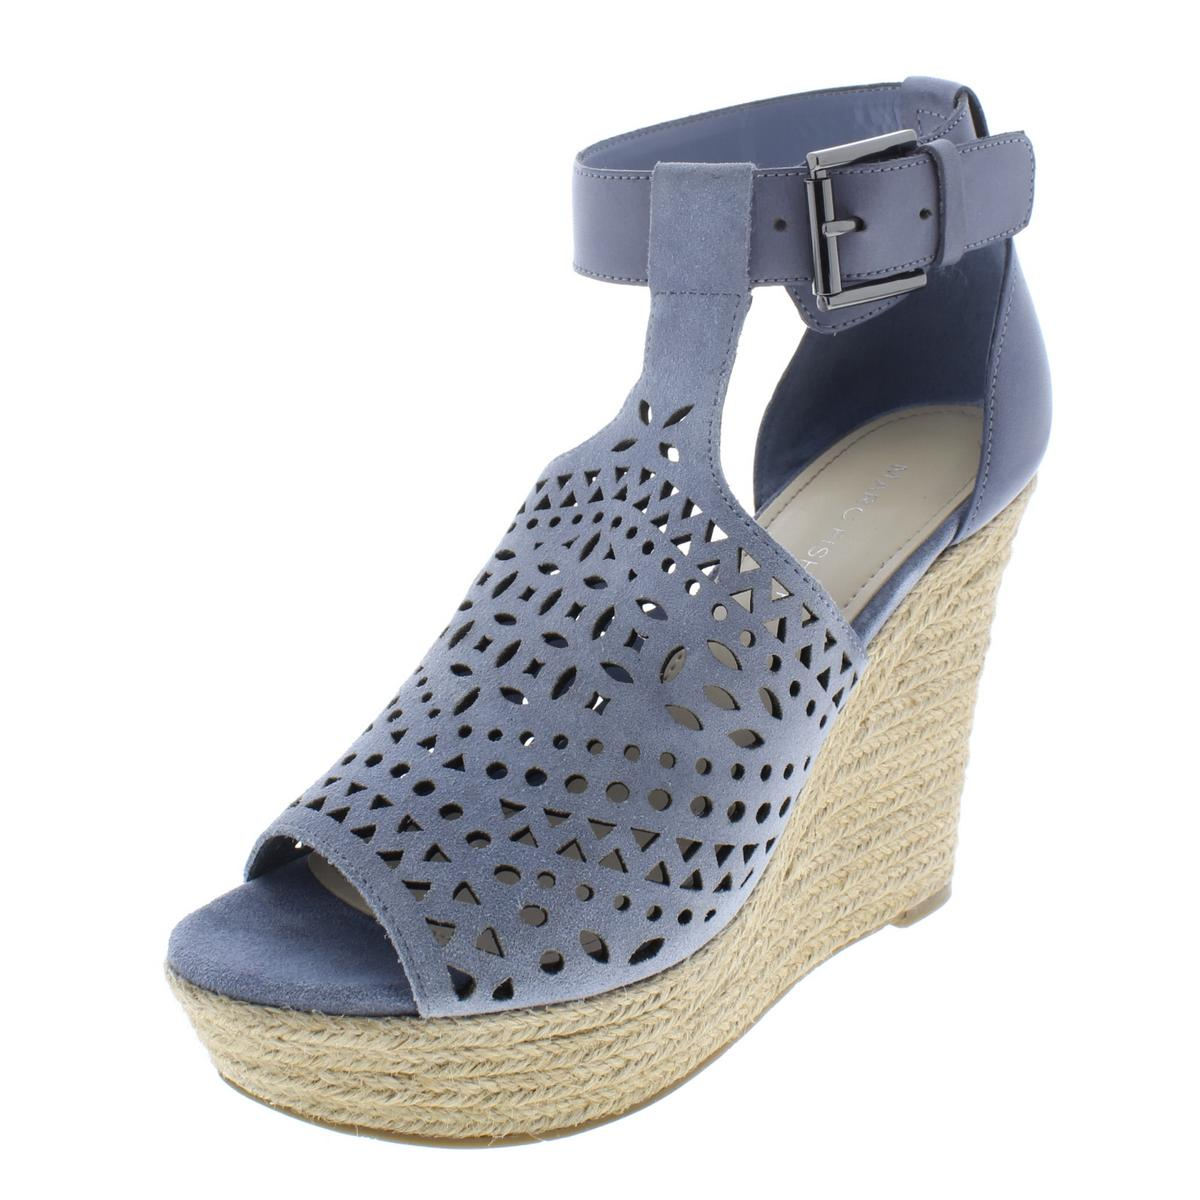 a8042b34a75 Details about Marc Fisher Womens Hasina Blue Wedge Sandals Shoes 7 Medium  (B